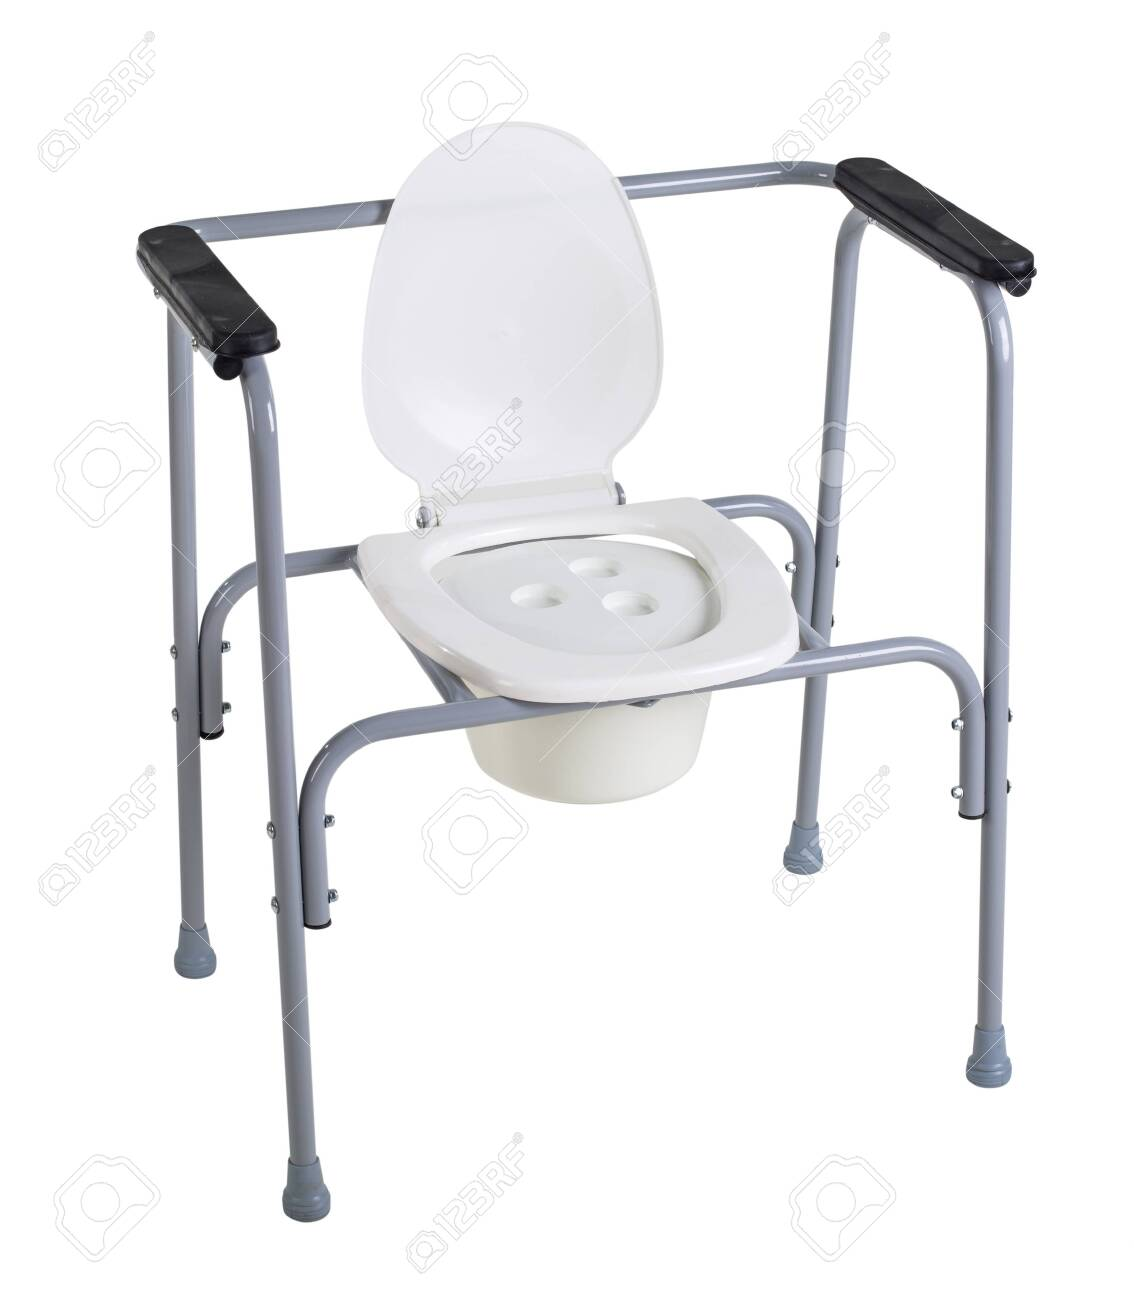 Toilet Seat For Elderly.Toilet Chair For Rehabilitation In Postoperative Period The